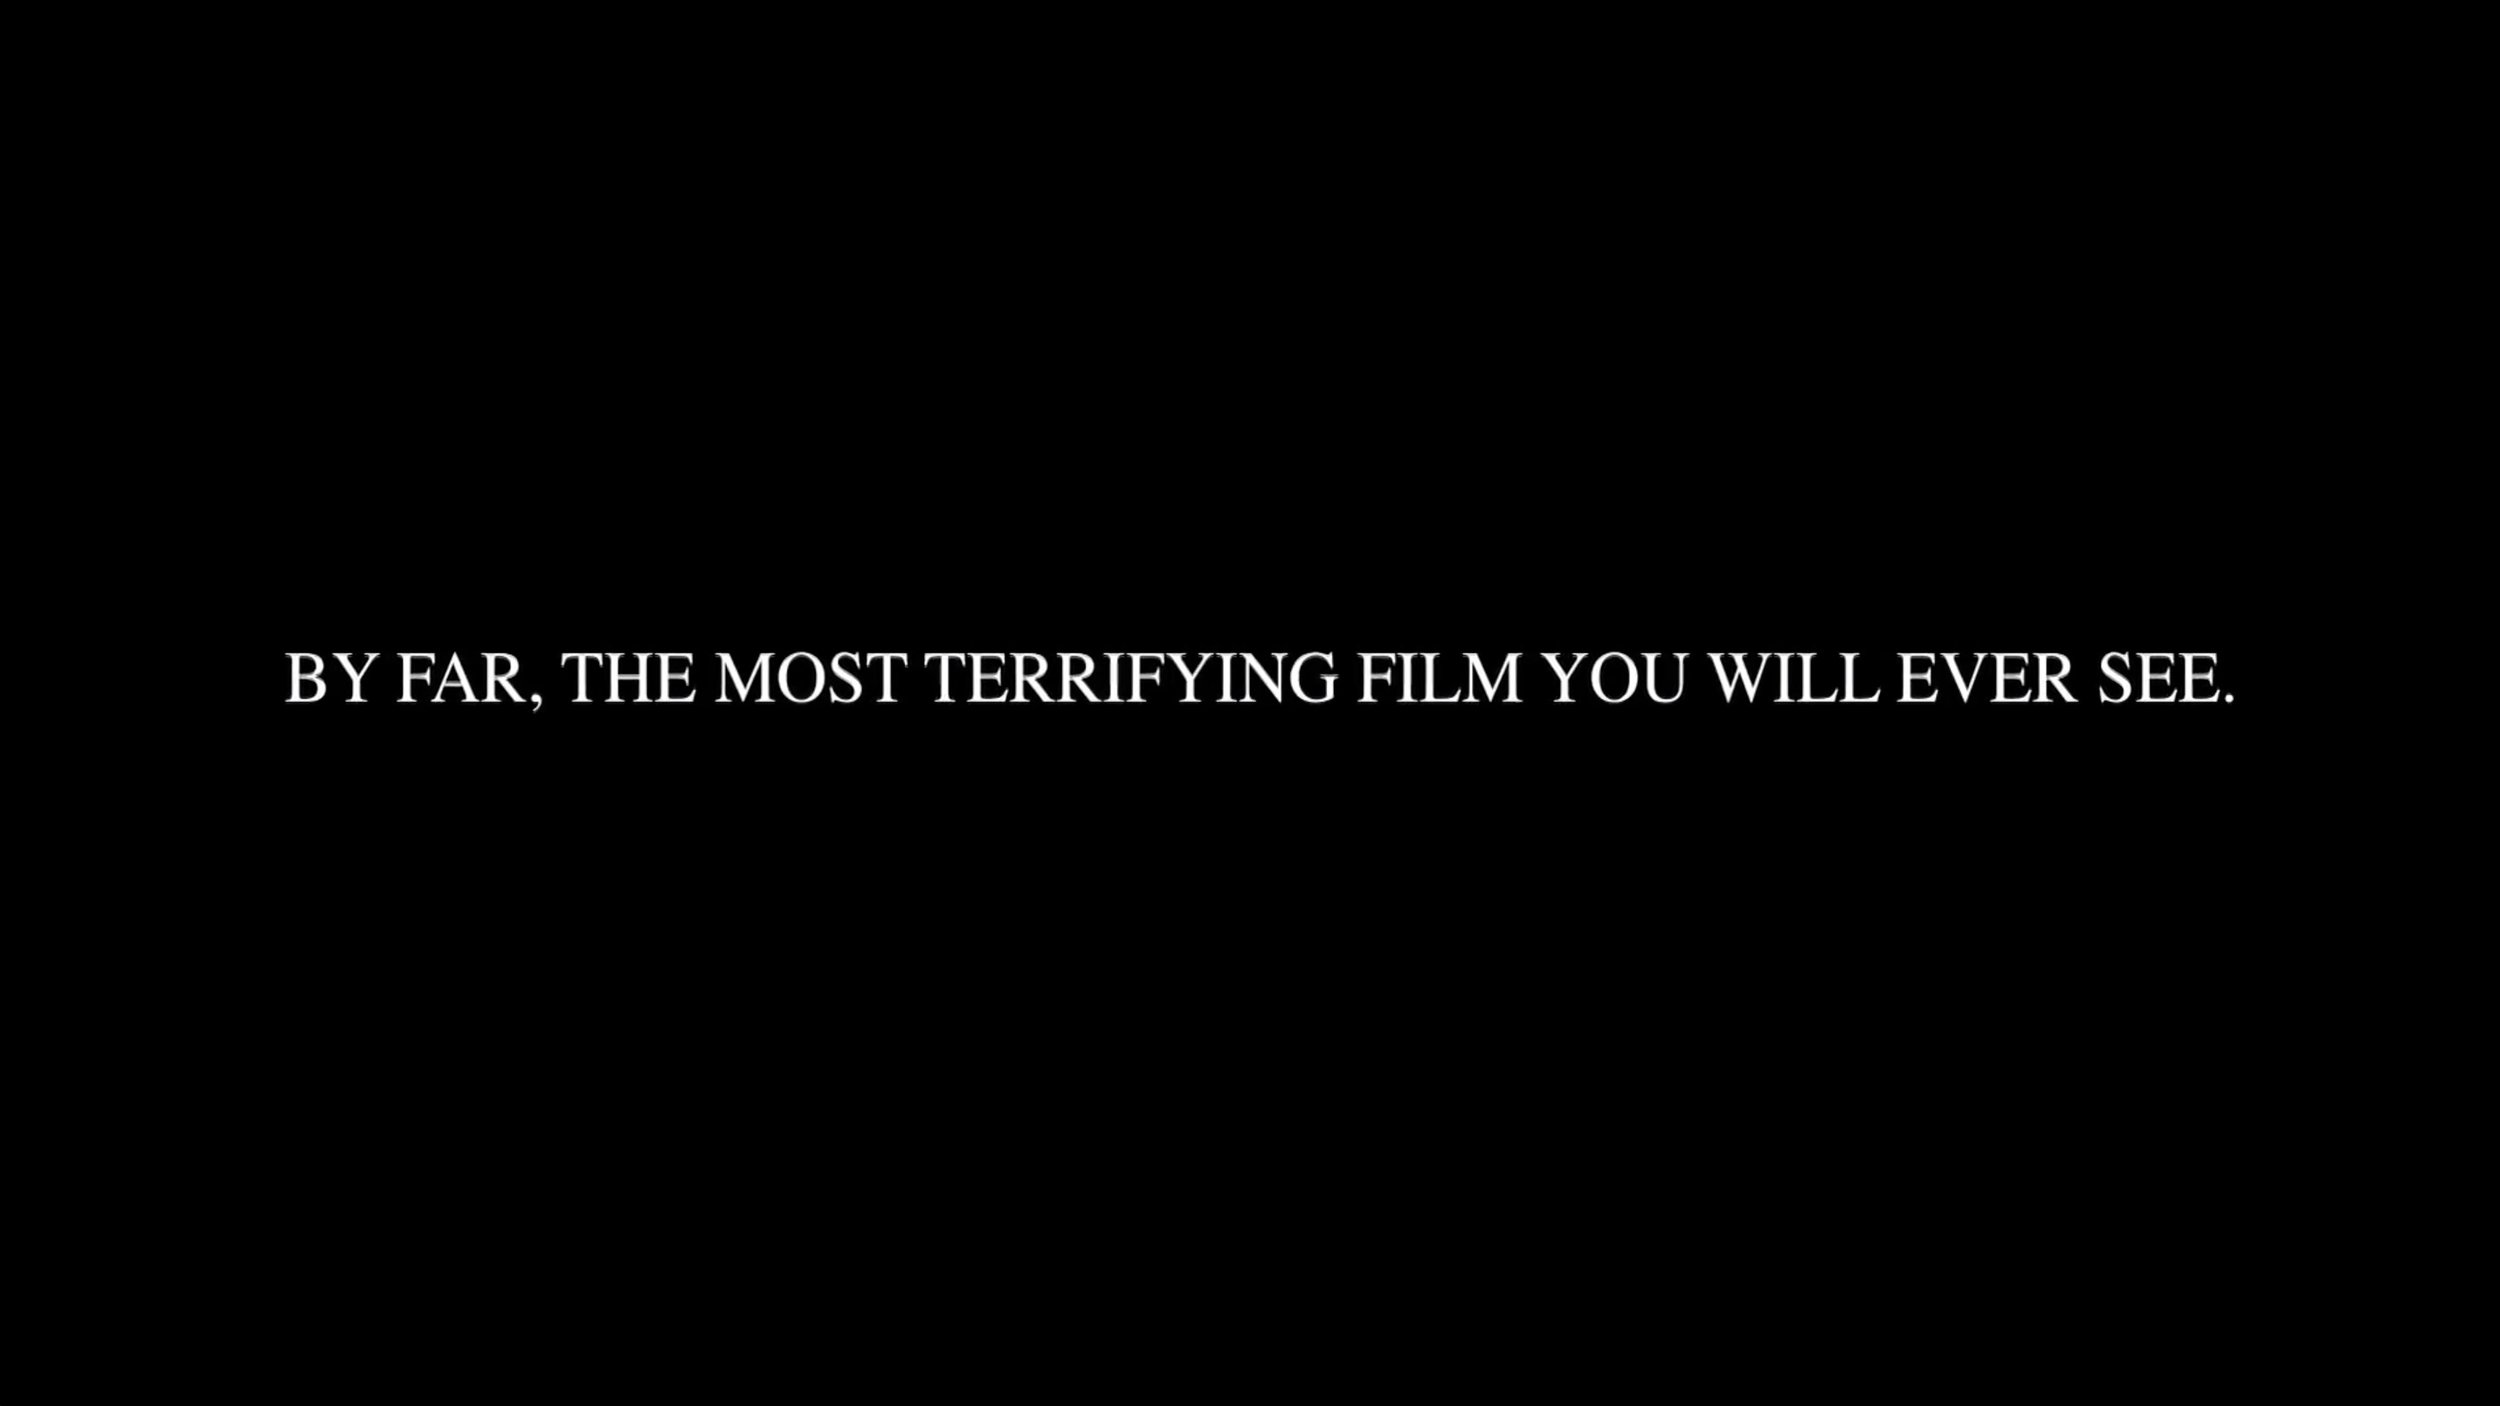 """This title card literally frames this as something terrifying, but the serif typeface also signals this is an """"important"""" film."""